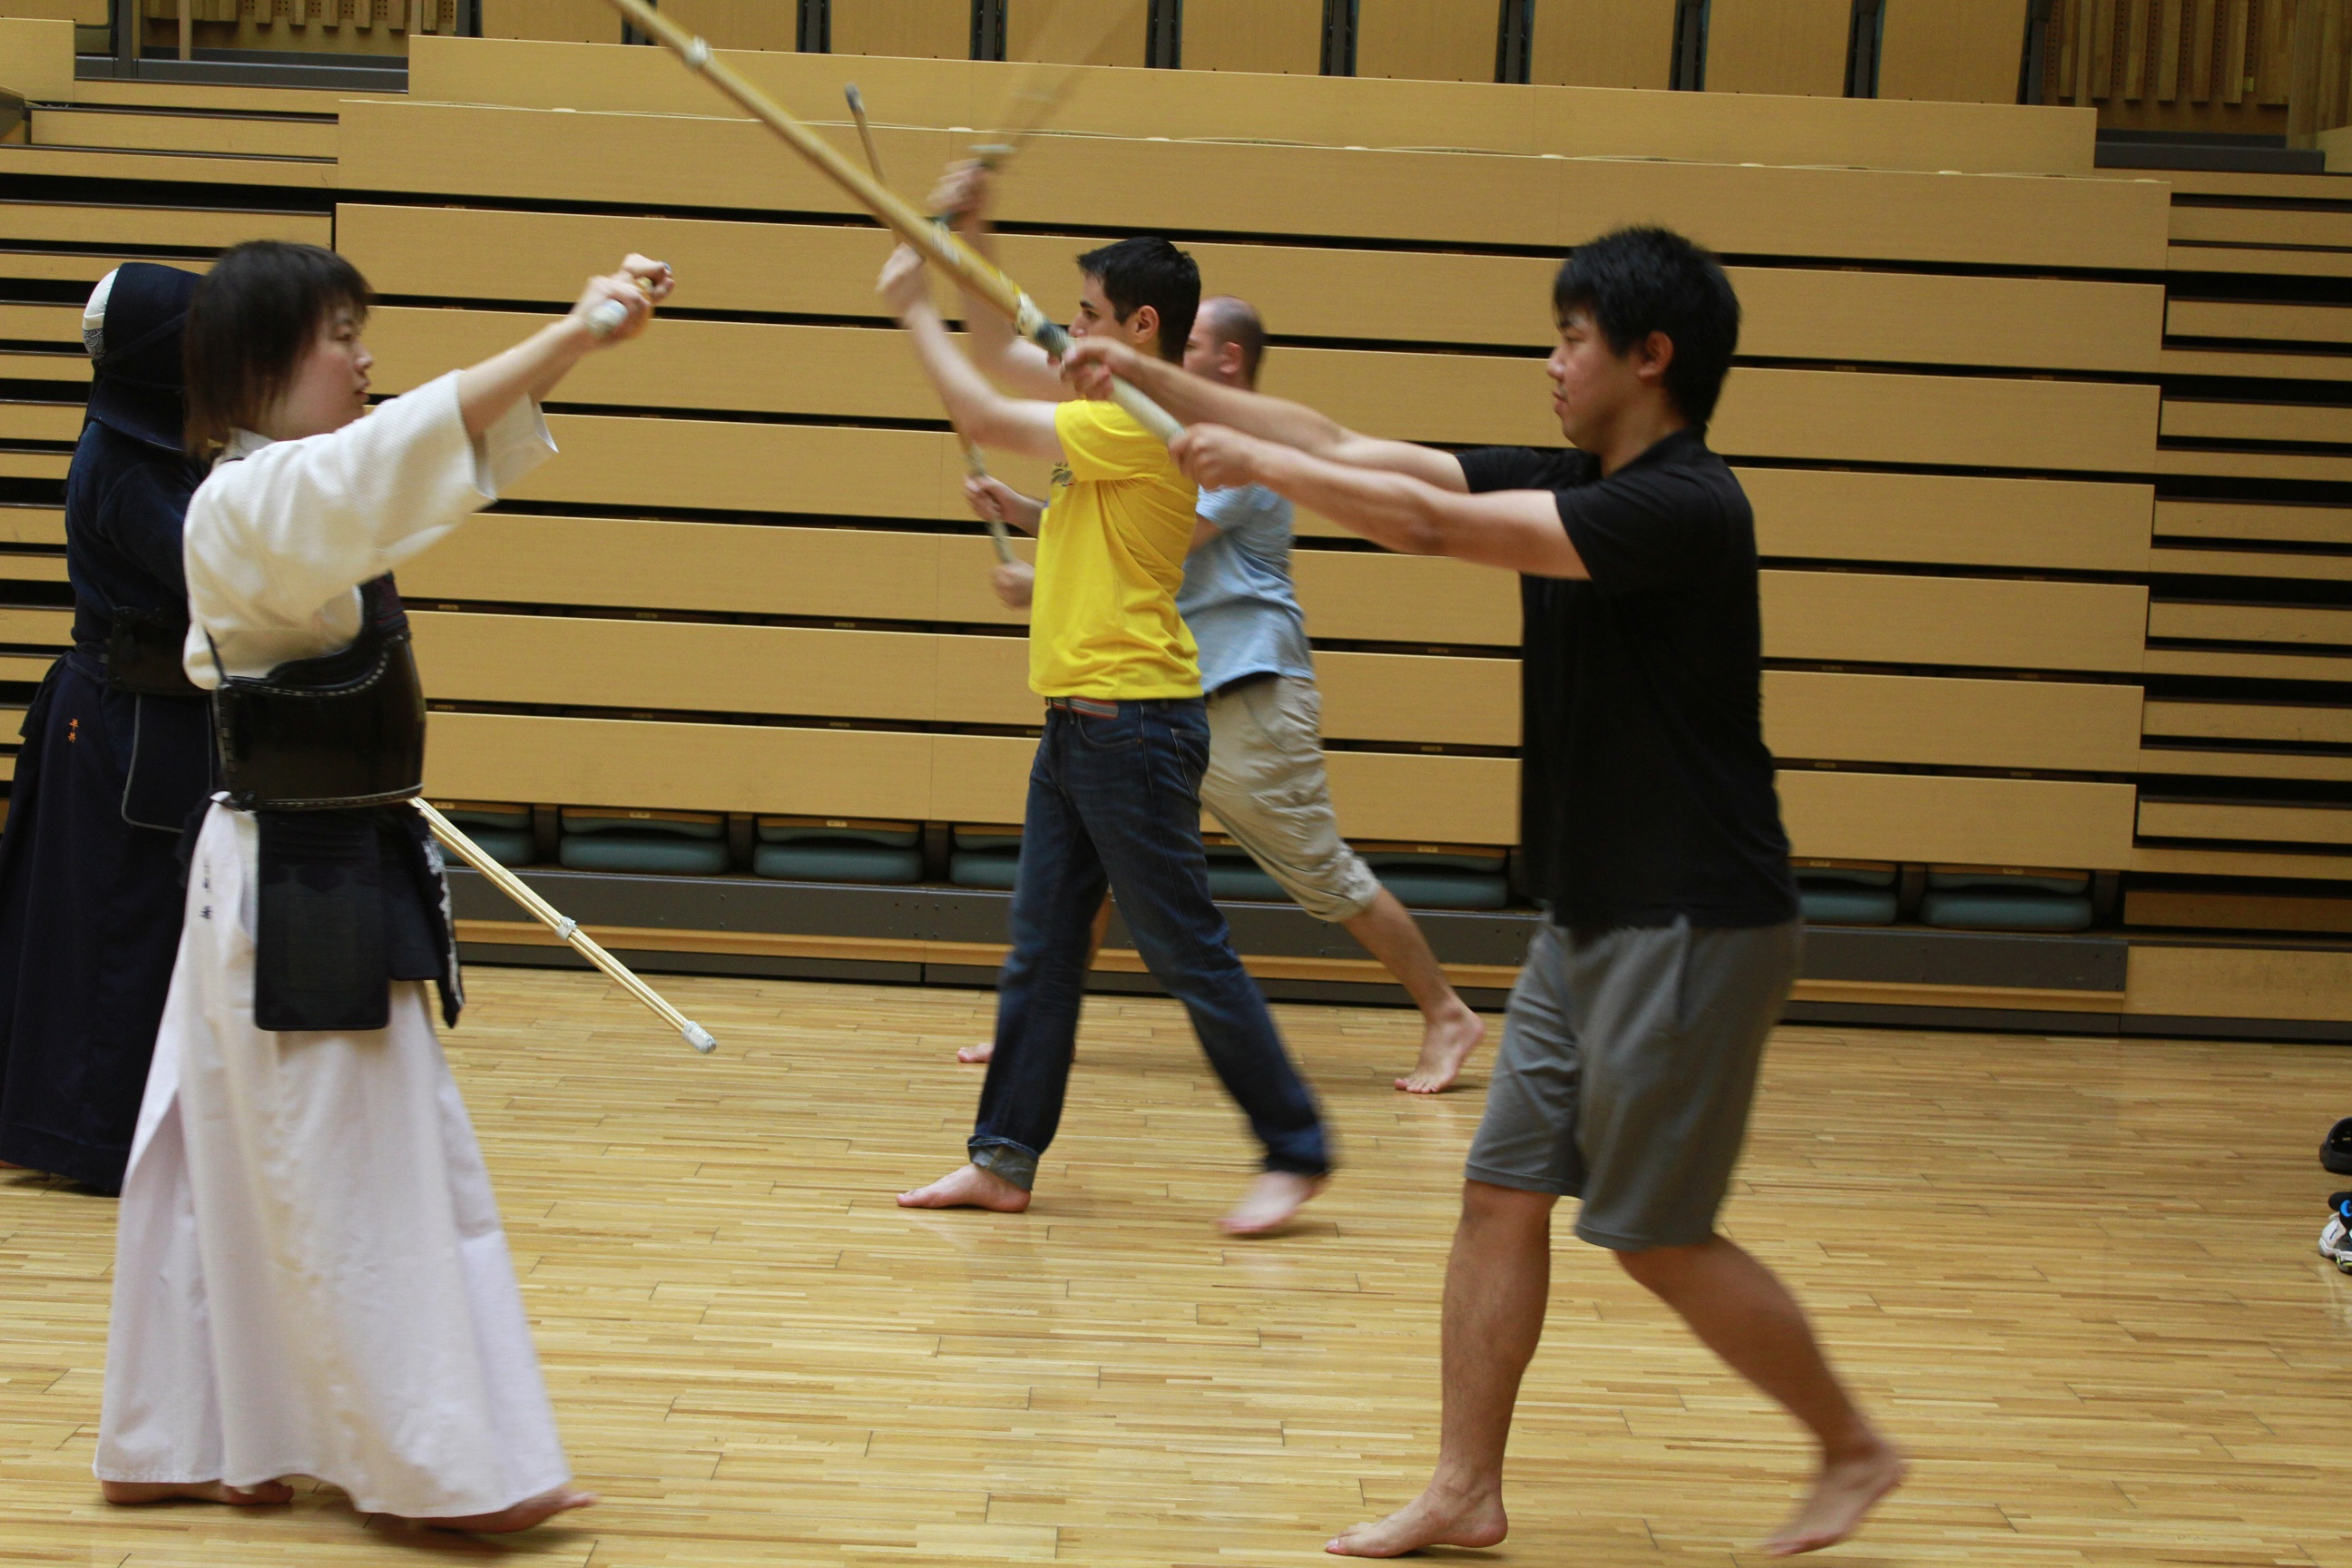 Beginners practicing at NAIST Kendo Club.